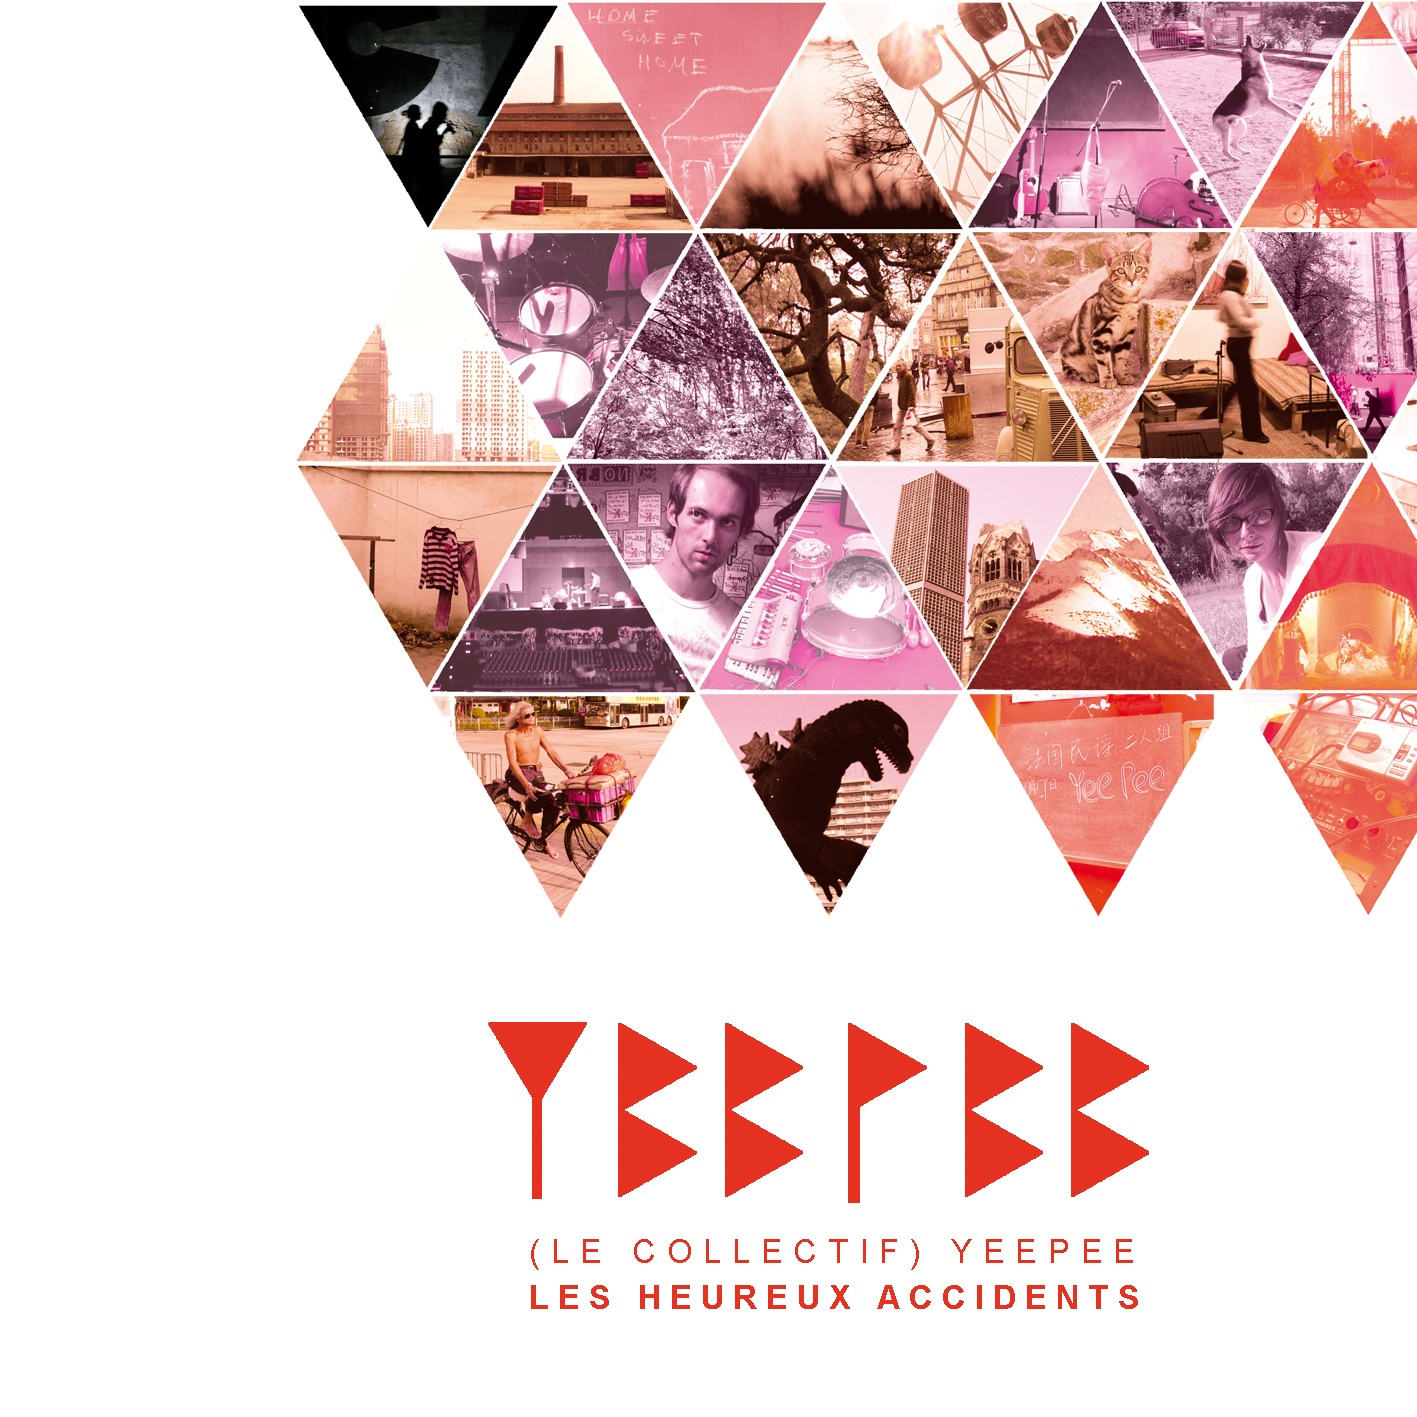 Yeepee – Les heureux accidents